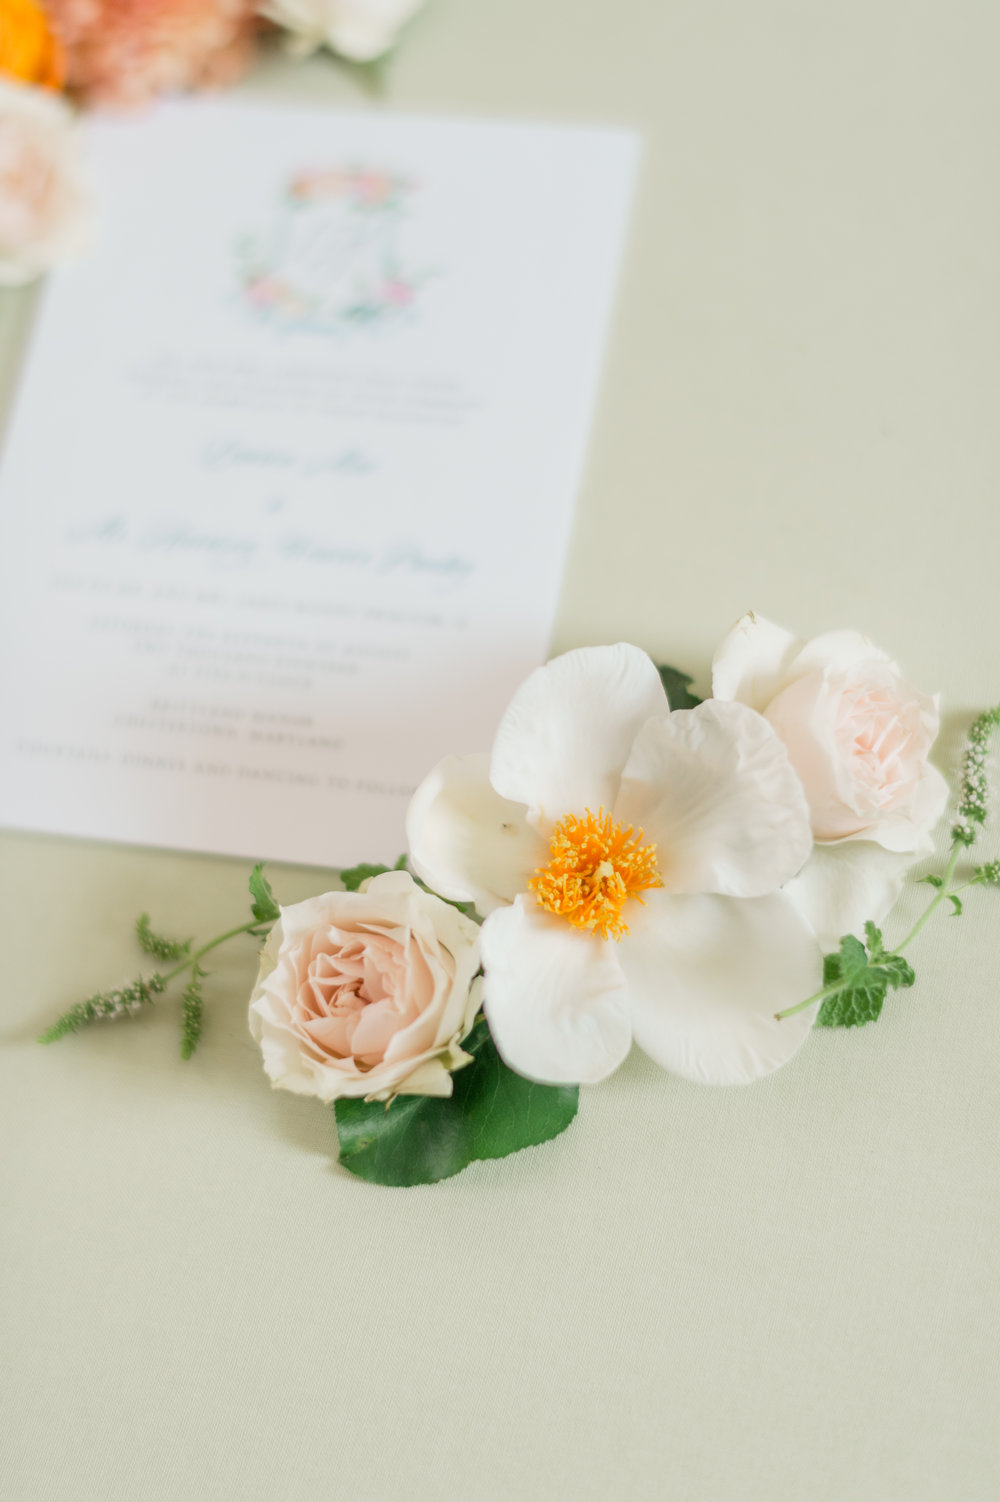 Sophie Felts Floral Design | L + H at Brittland Manor | DC Wedding Florist | MD Wedding Florist